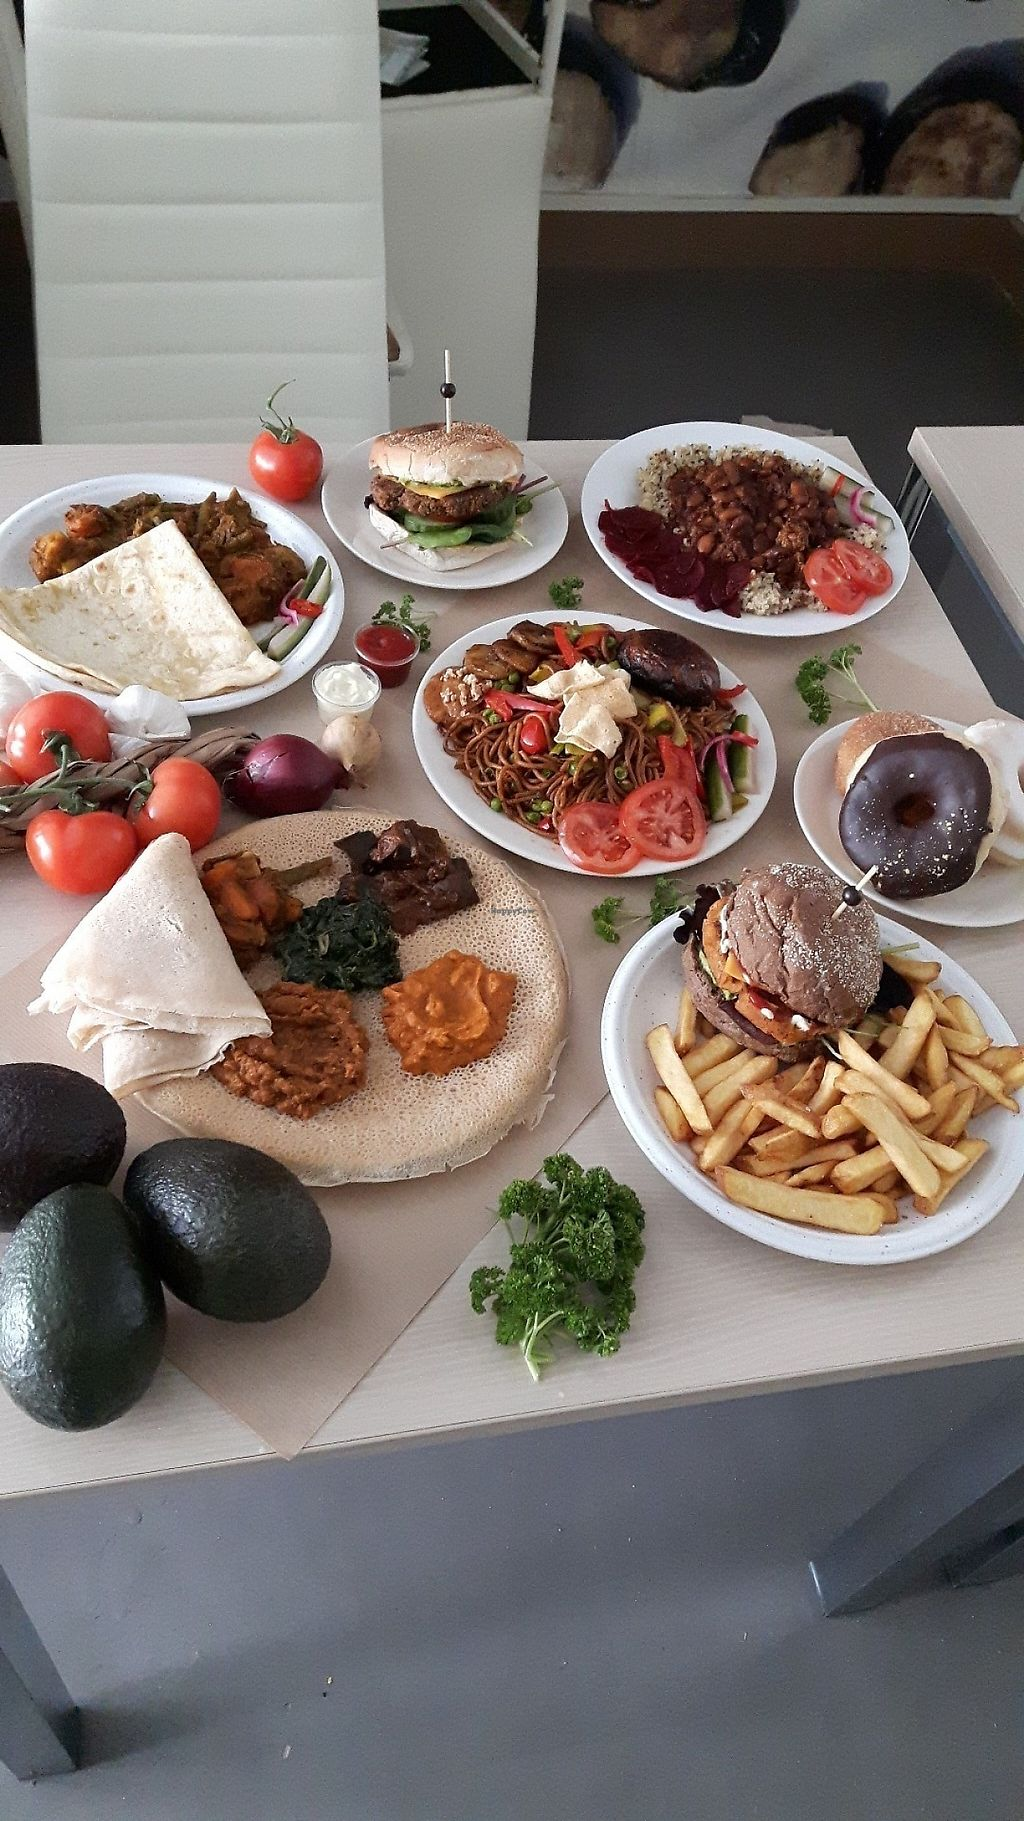 """Photo of Mooshka  by <a href=""""/members/profile/Mushka"""">Mushka</a> <br/>Some of the meals offered at Mooshka <br/> May 7, 2017  - <a href='/contact/abuse/image/84357/256662'>Report</a>"""